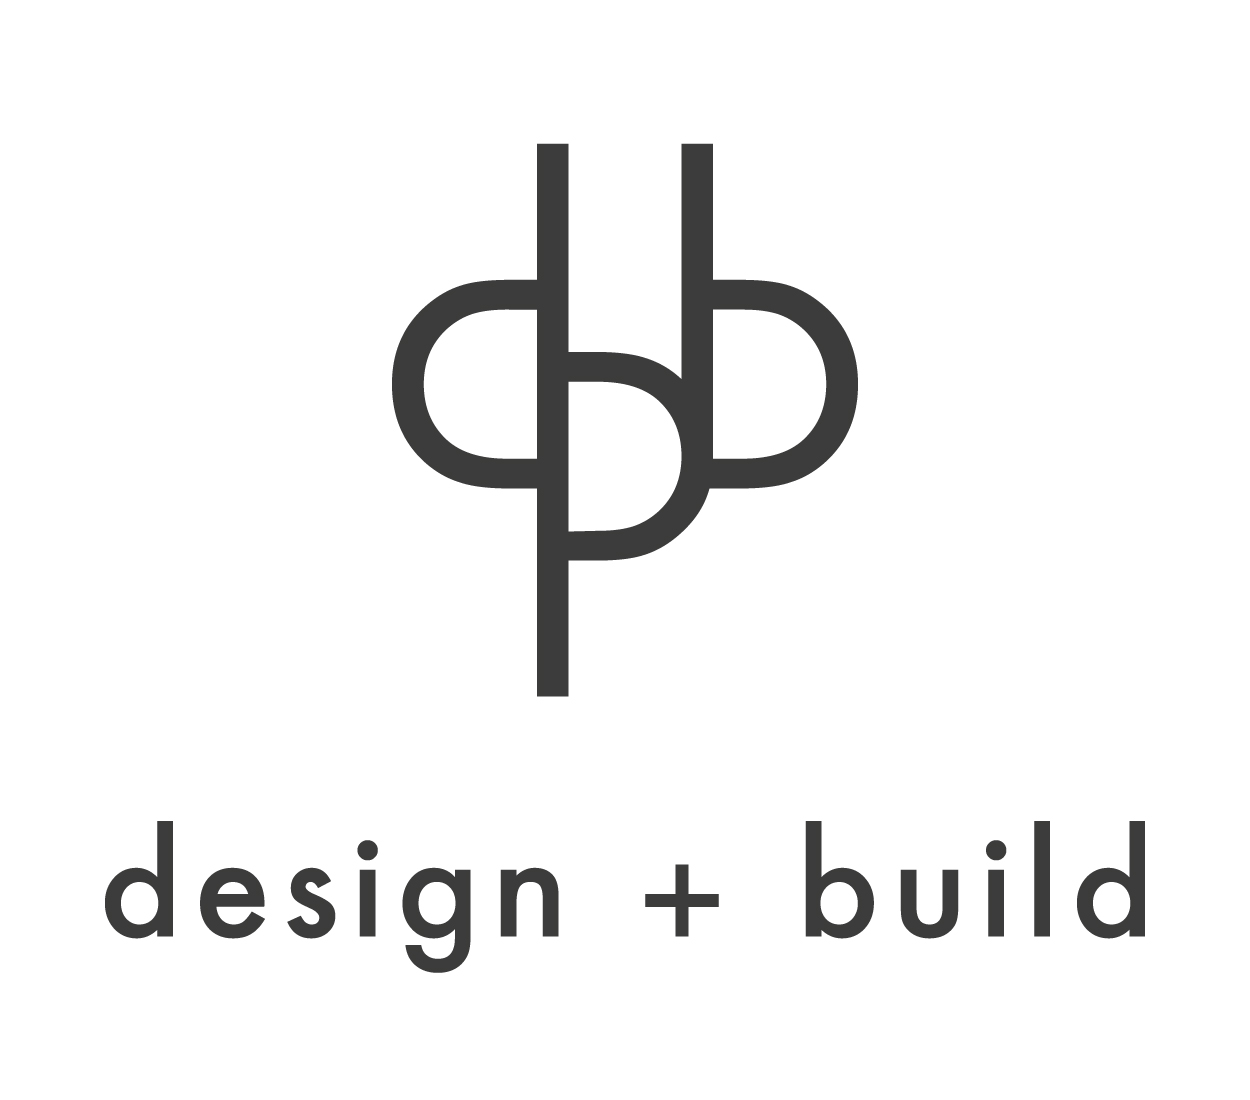 design + build Logo